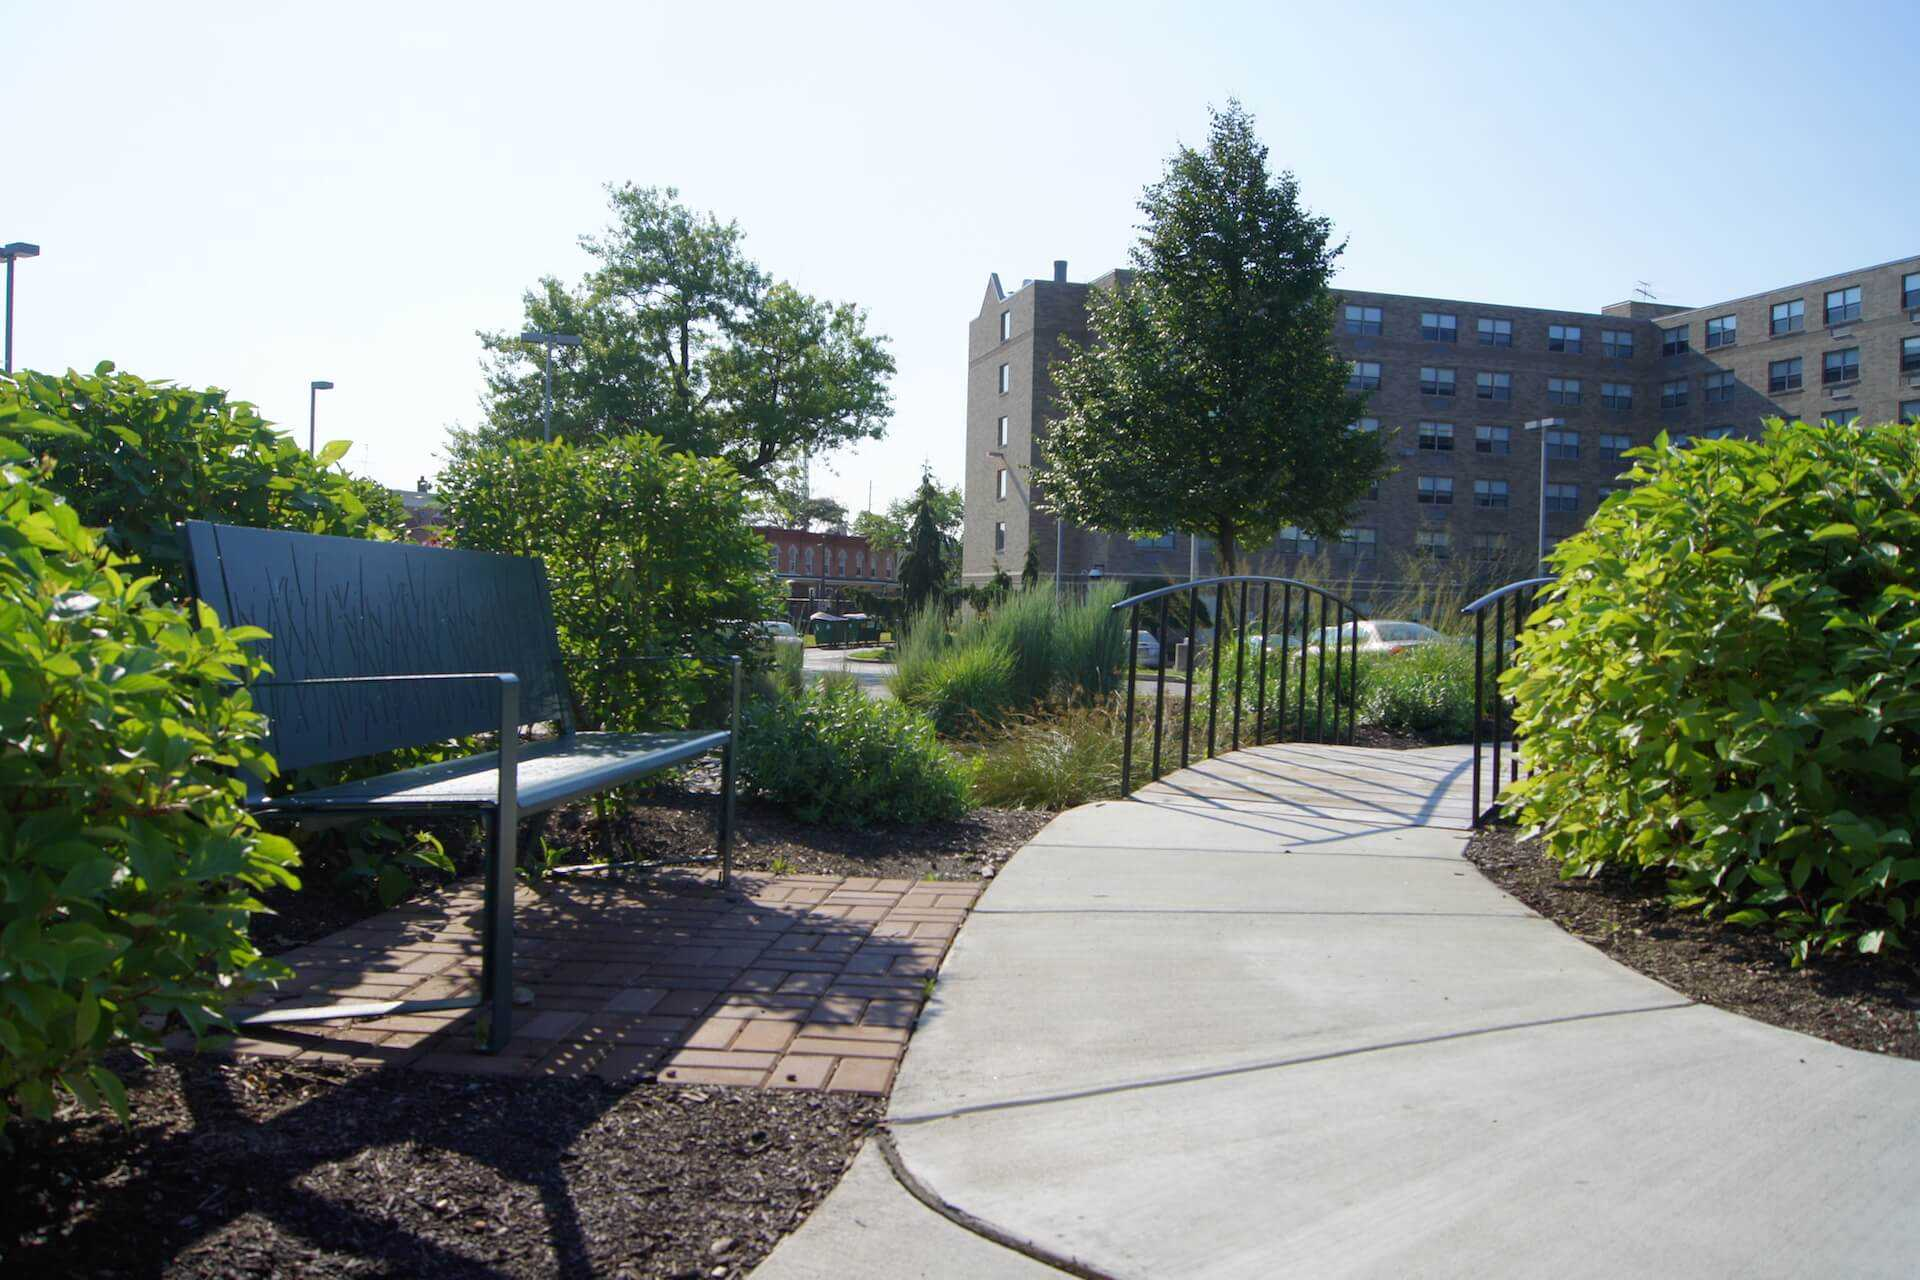 Chair next to the pathway close to small park bridge